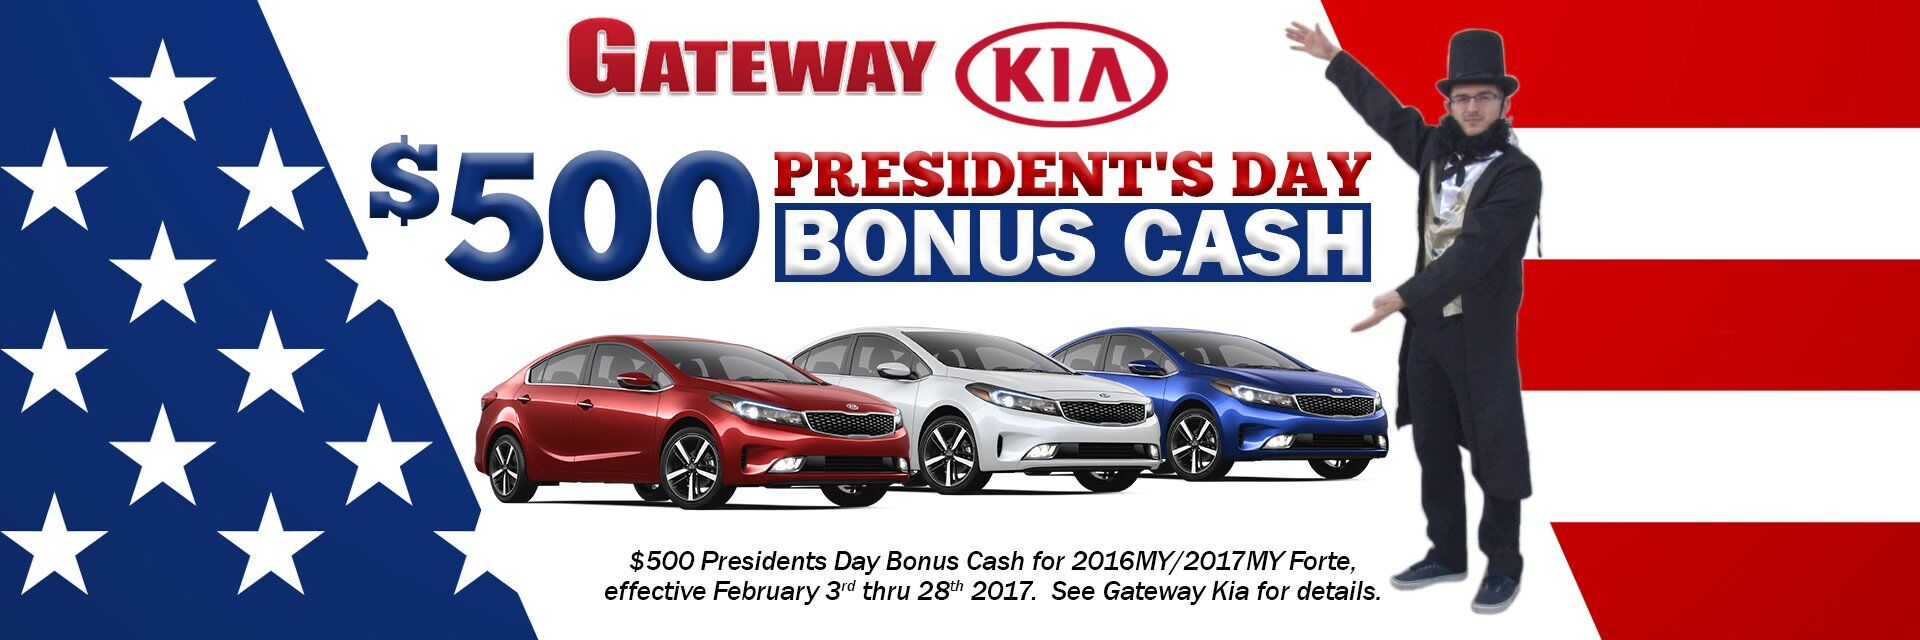 President's Day Bonus Cash